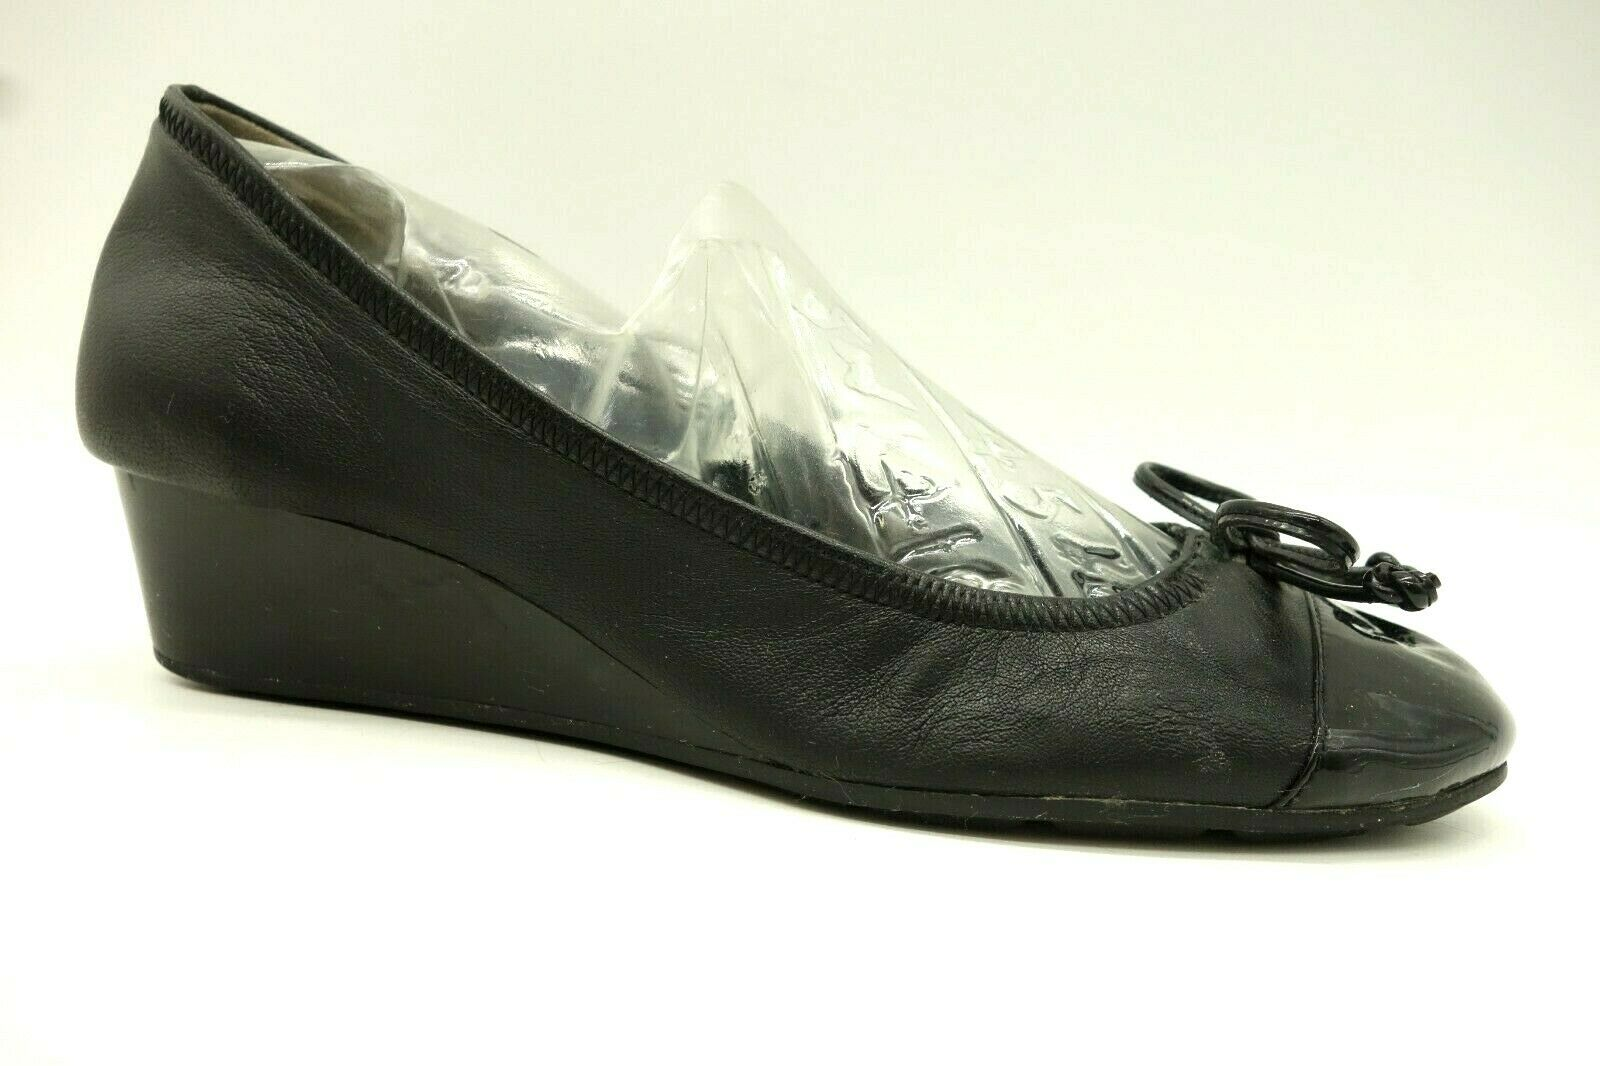 Cole Haan Black Leather Cap Toe Casual Wedge Heel Flats shoes Women's 5.5 B